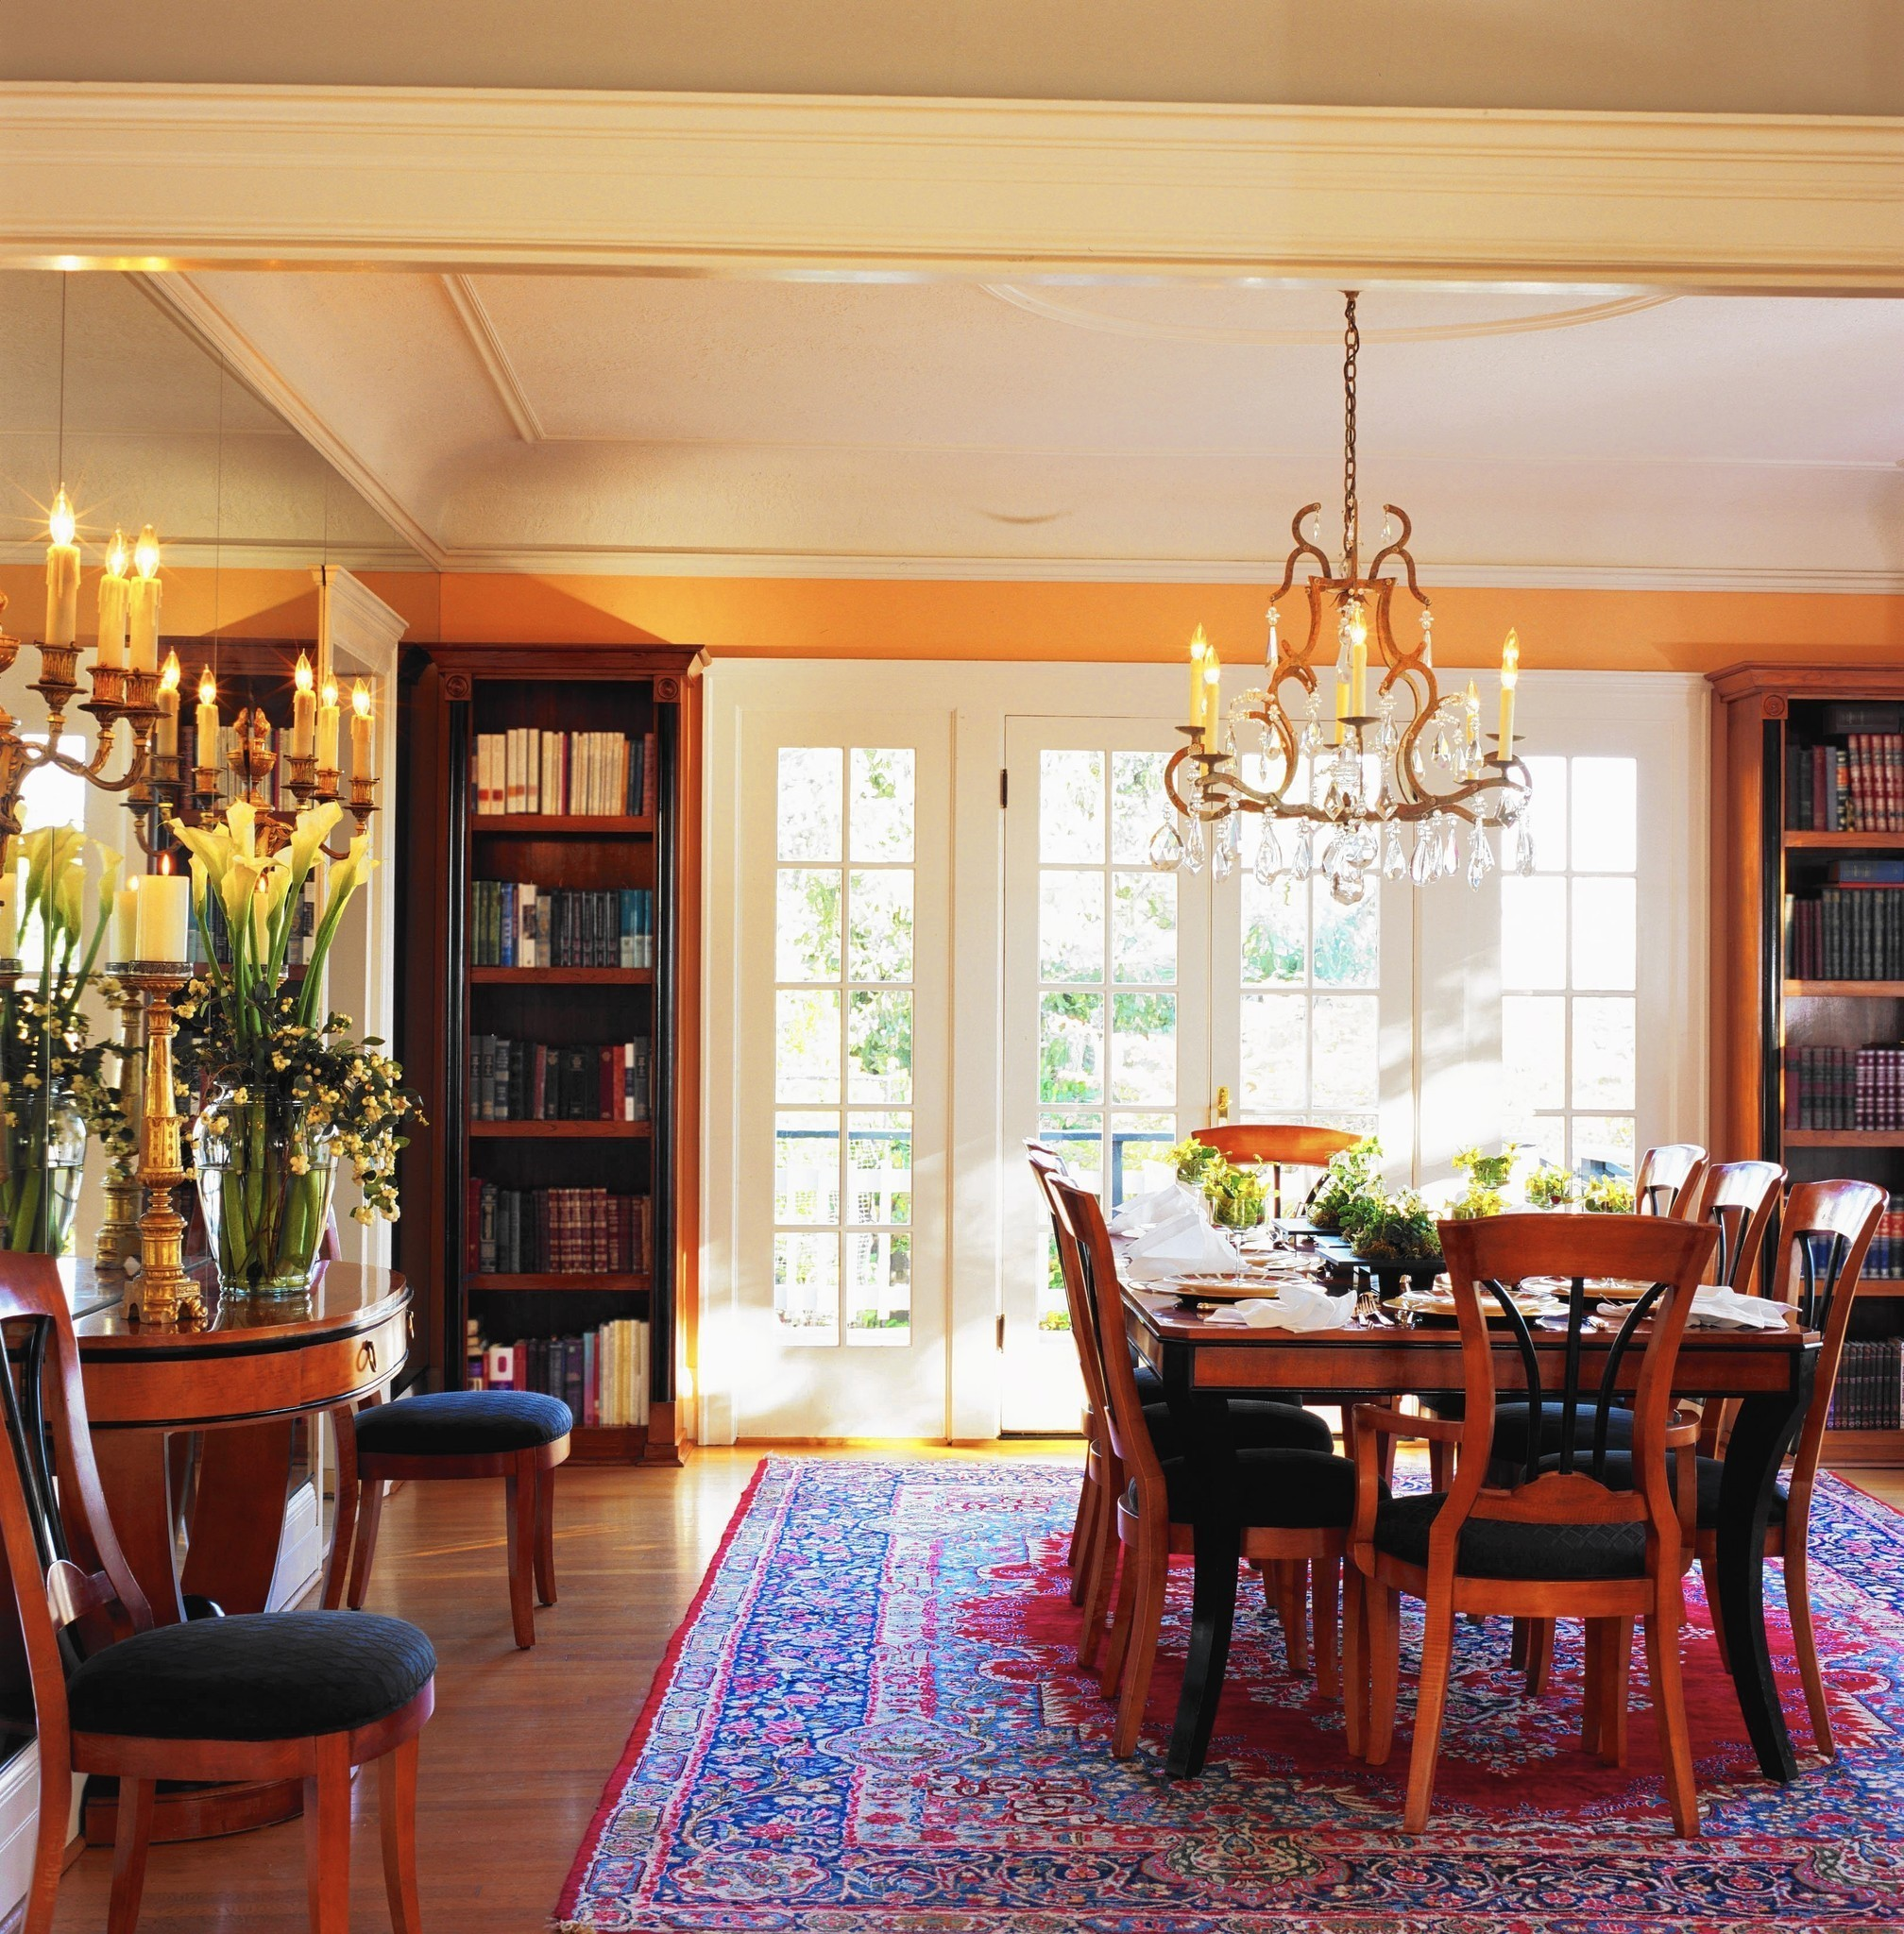 Dining Room Tables Chicago: Study Turns The Tables On Dining Room Preferences